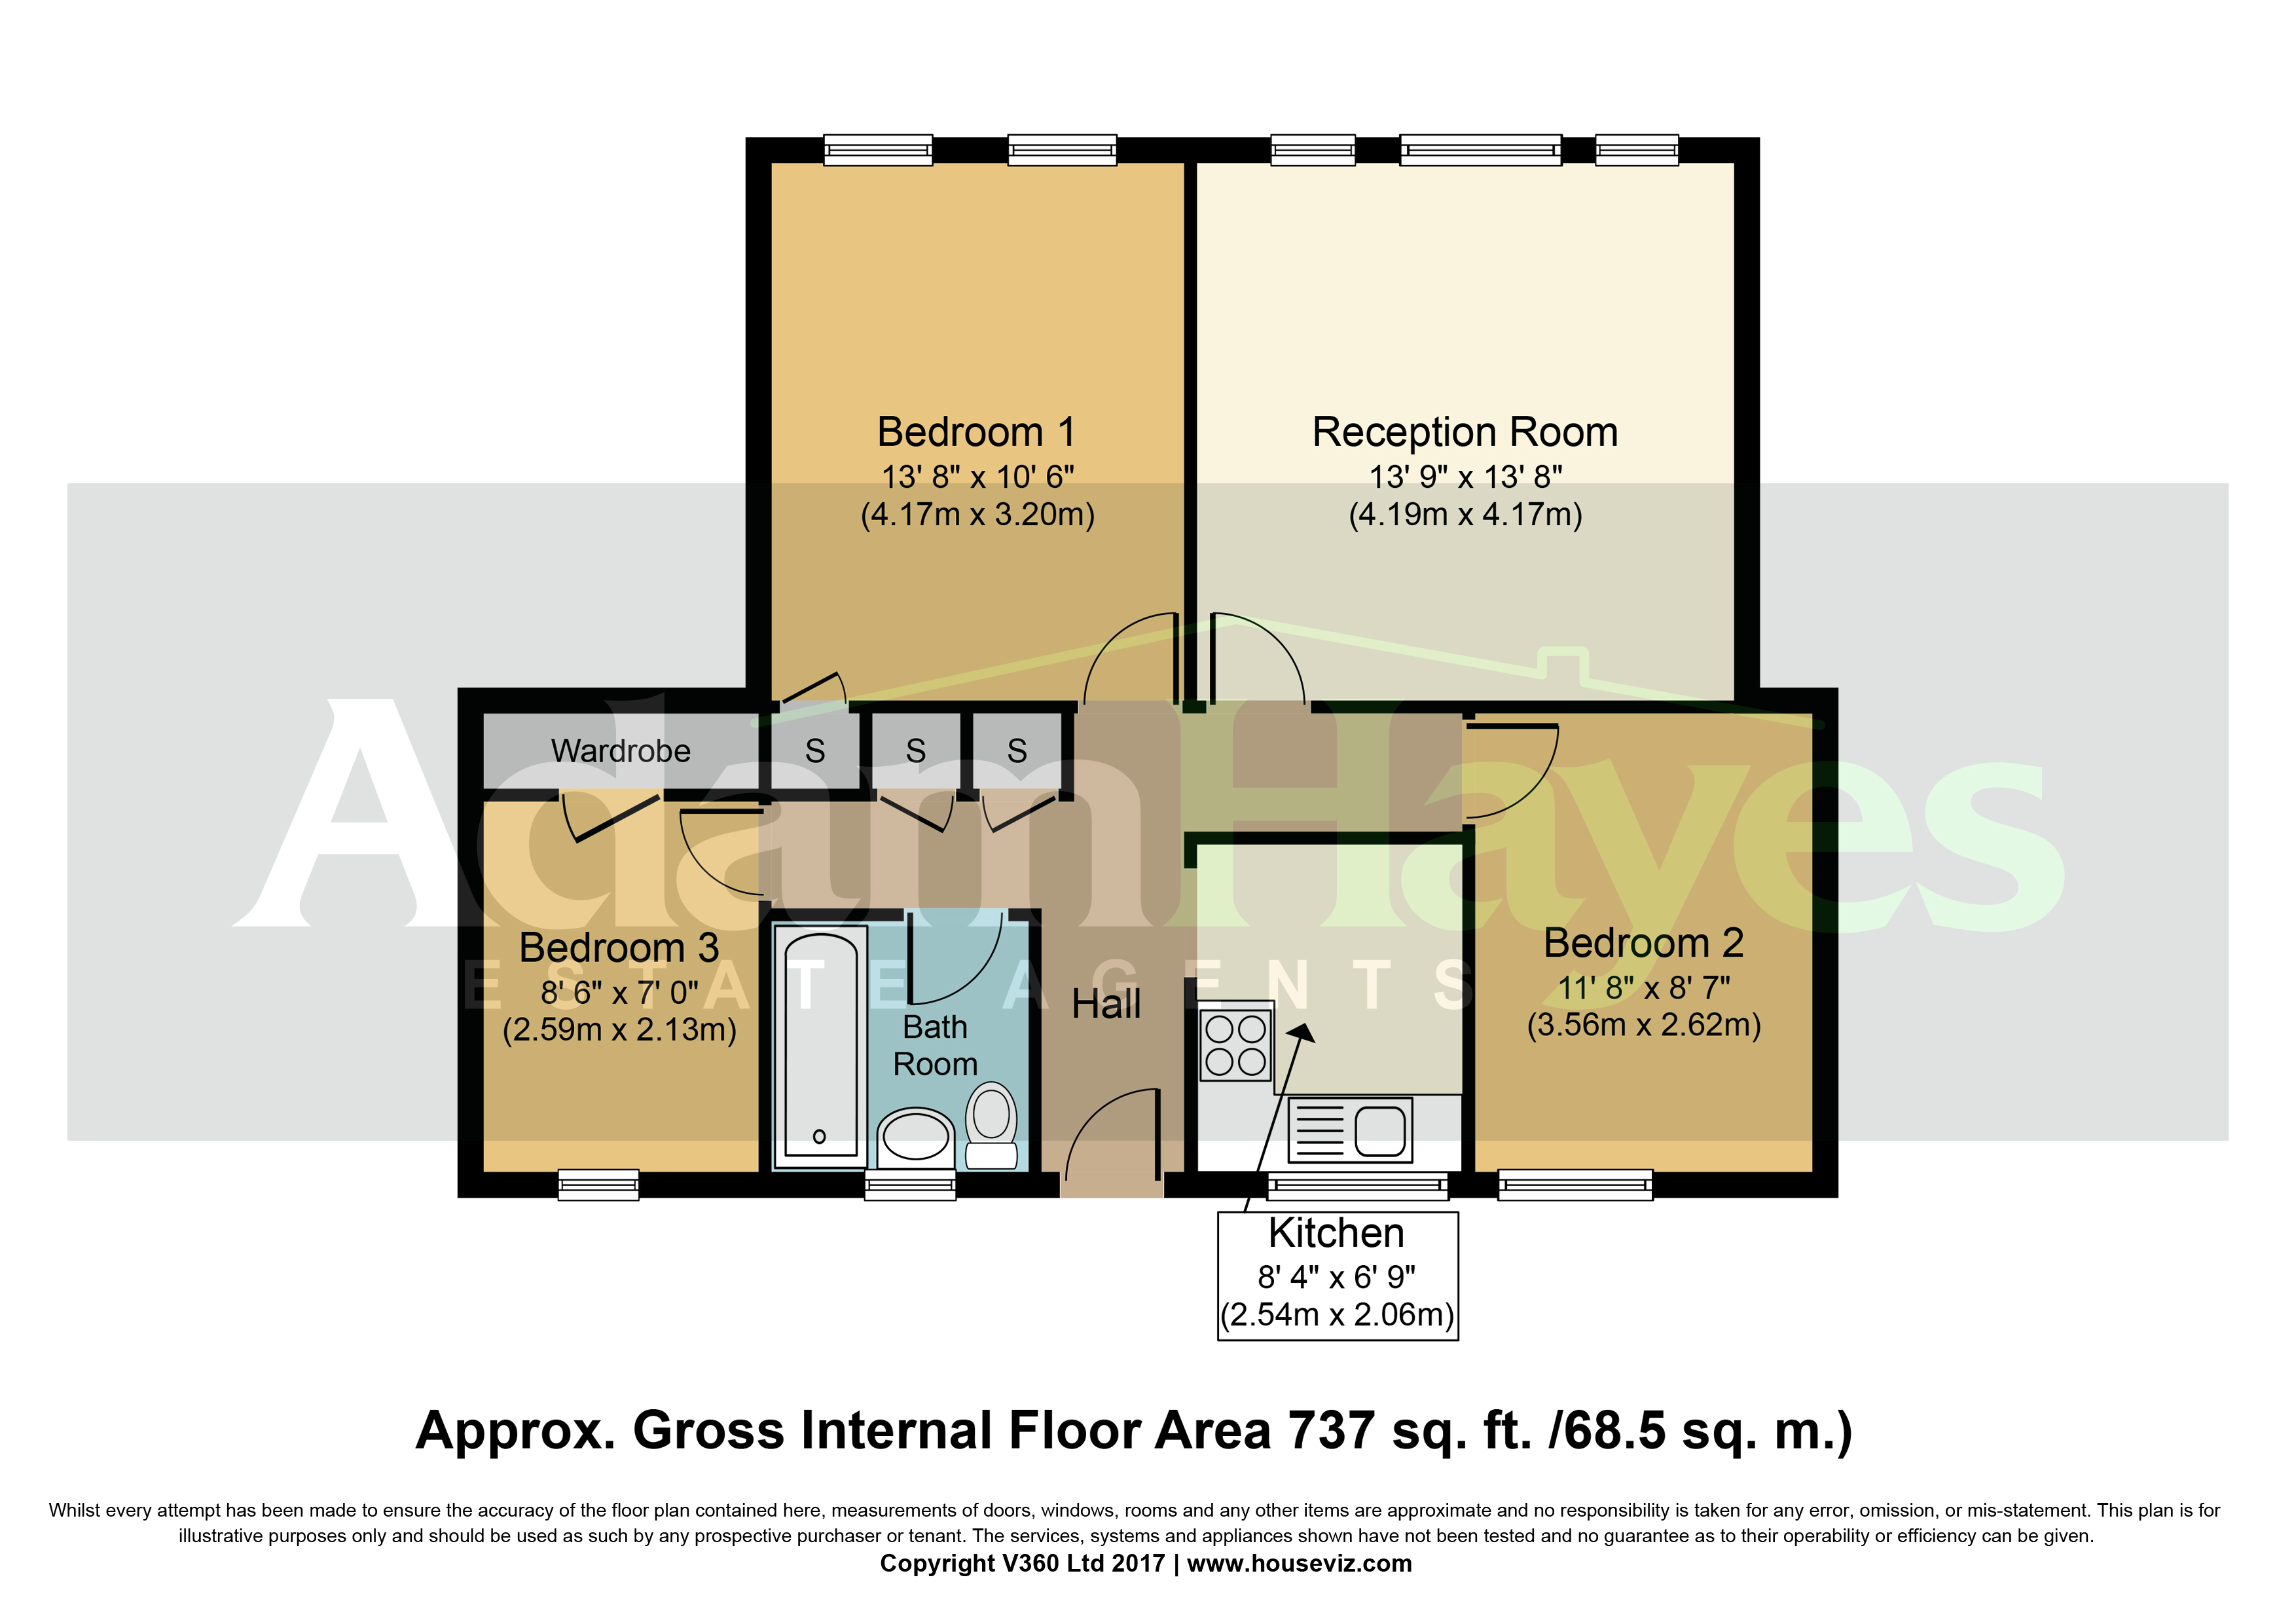 Grove House Waverley Grove Finchley Central N3 3 Bedroom Flat For Sale 45857791 Primelocation